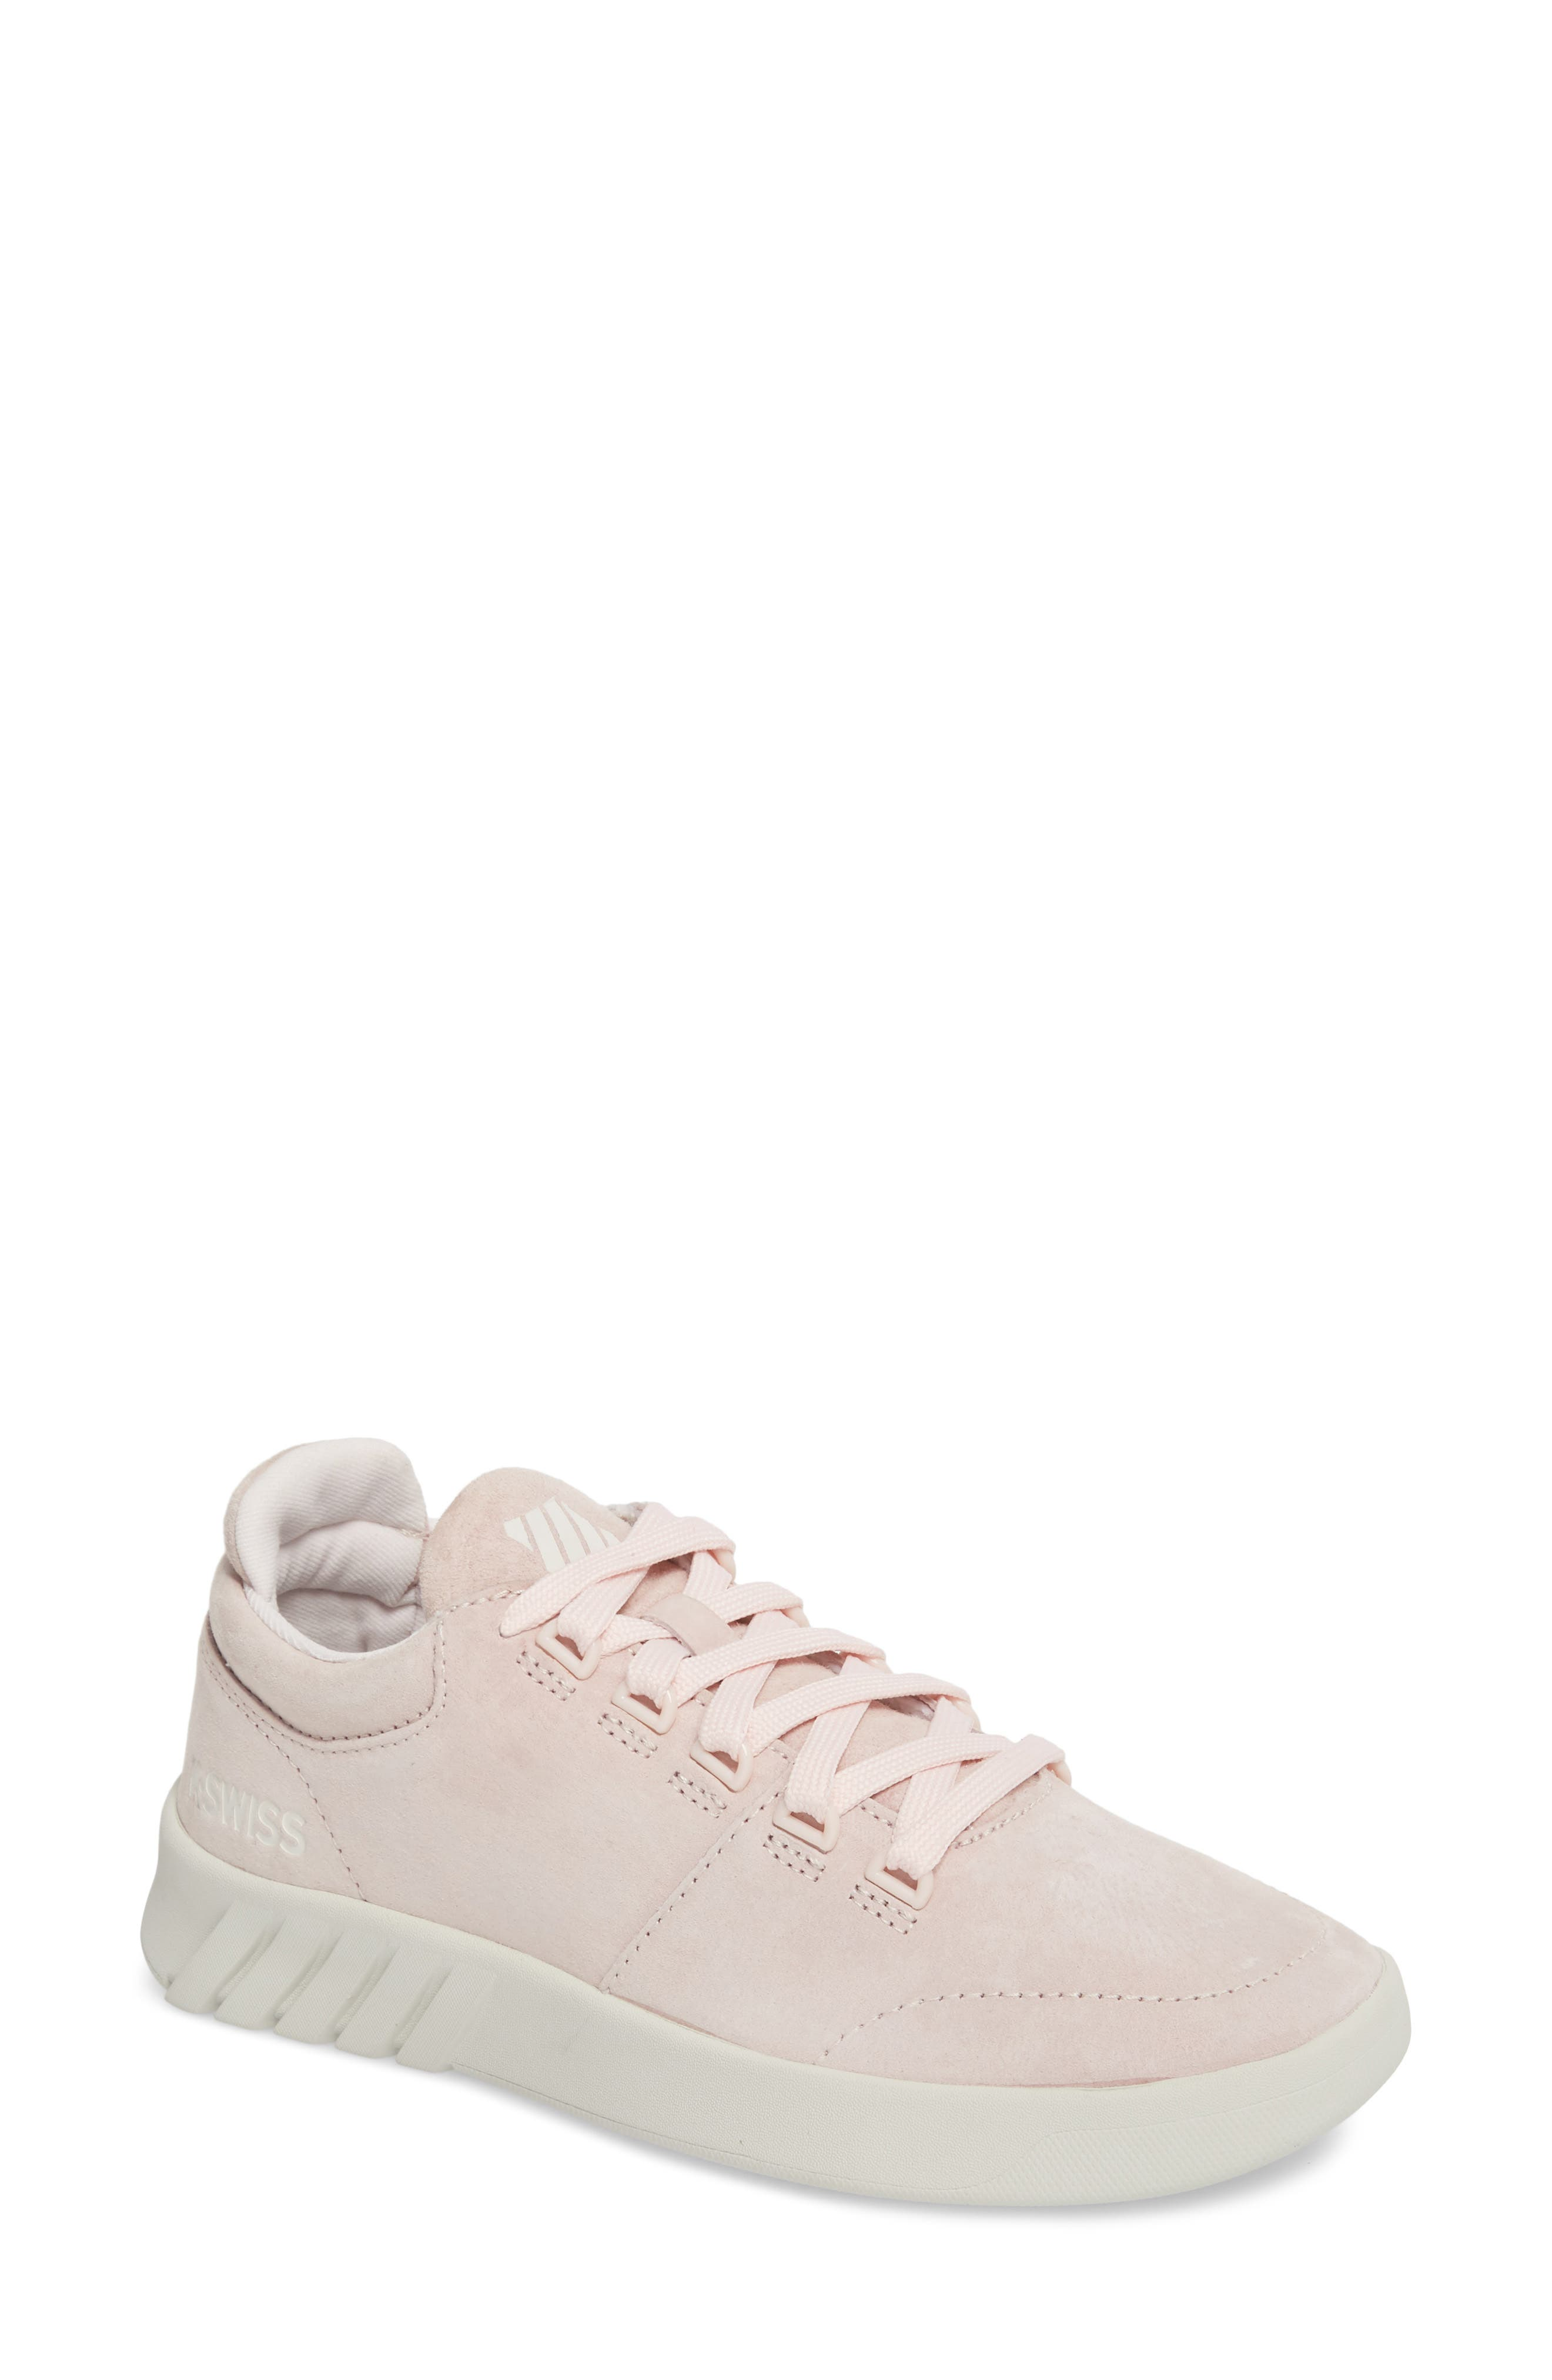 K-Swiss Aero Trainer T Sneaker (Women)